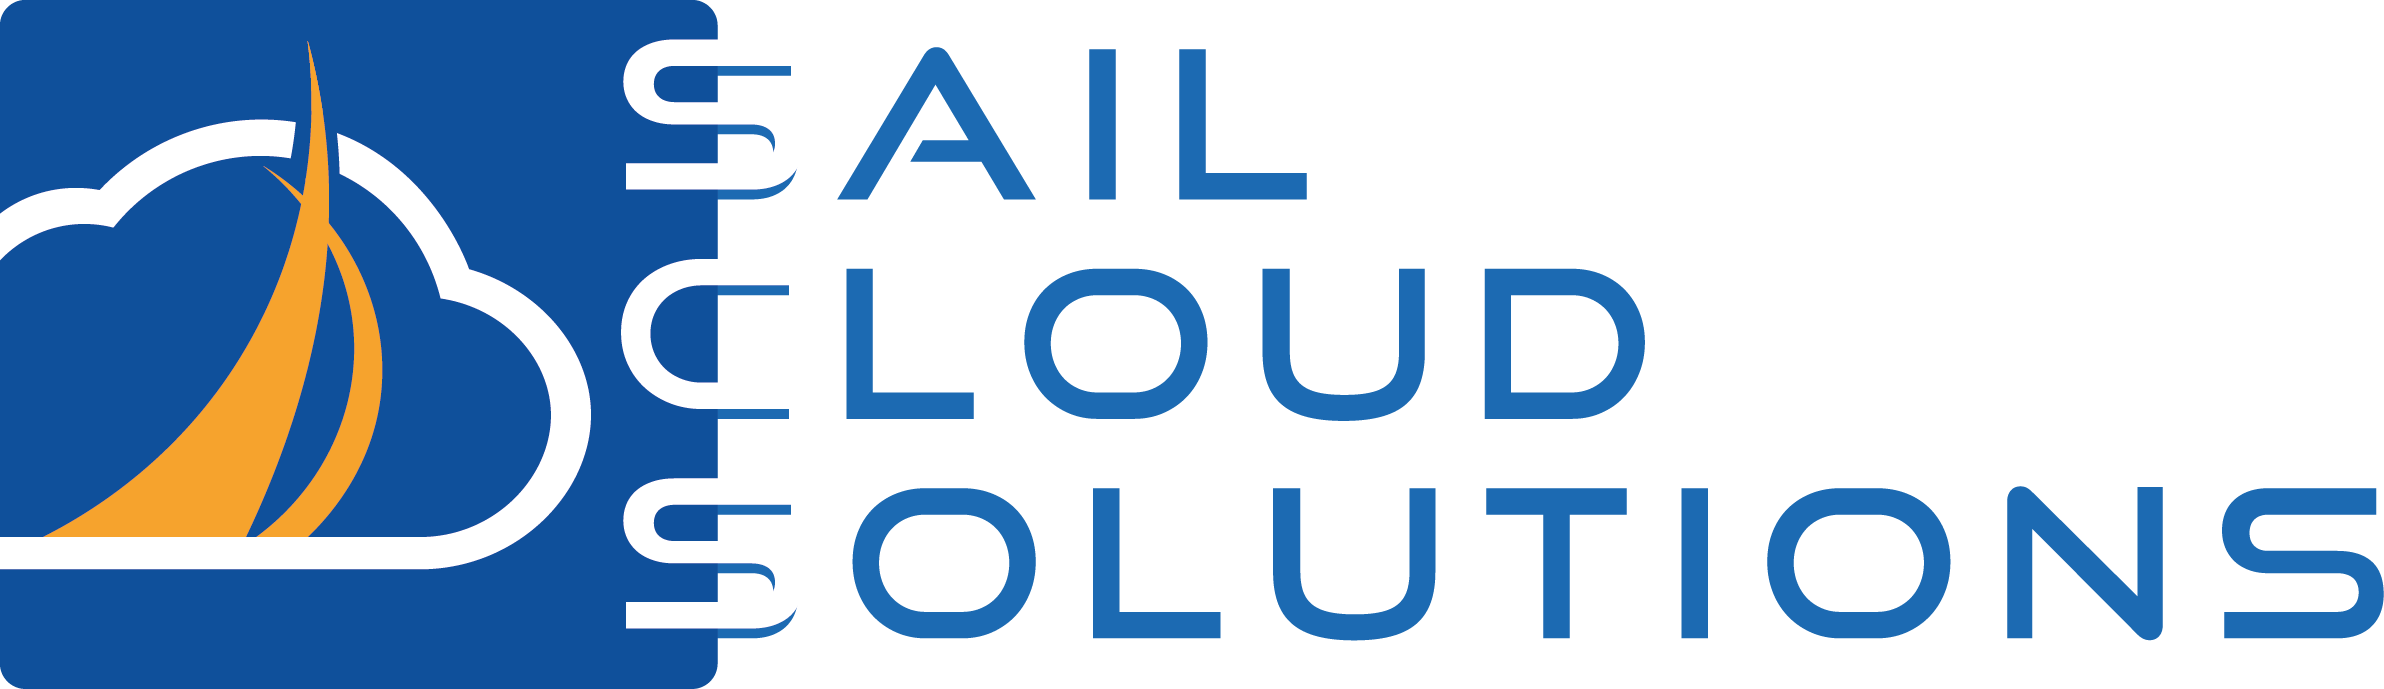 Sail Cloud Solutions – Salesforce Partner